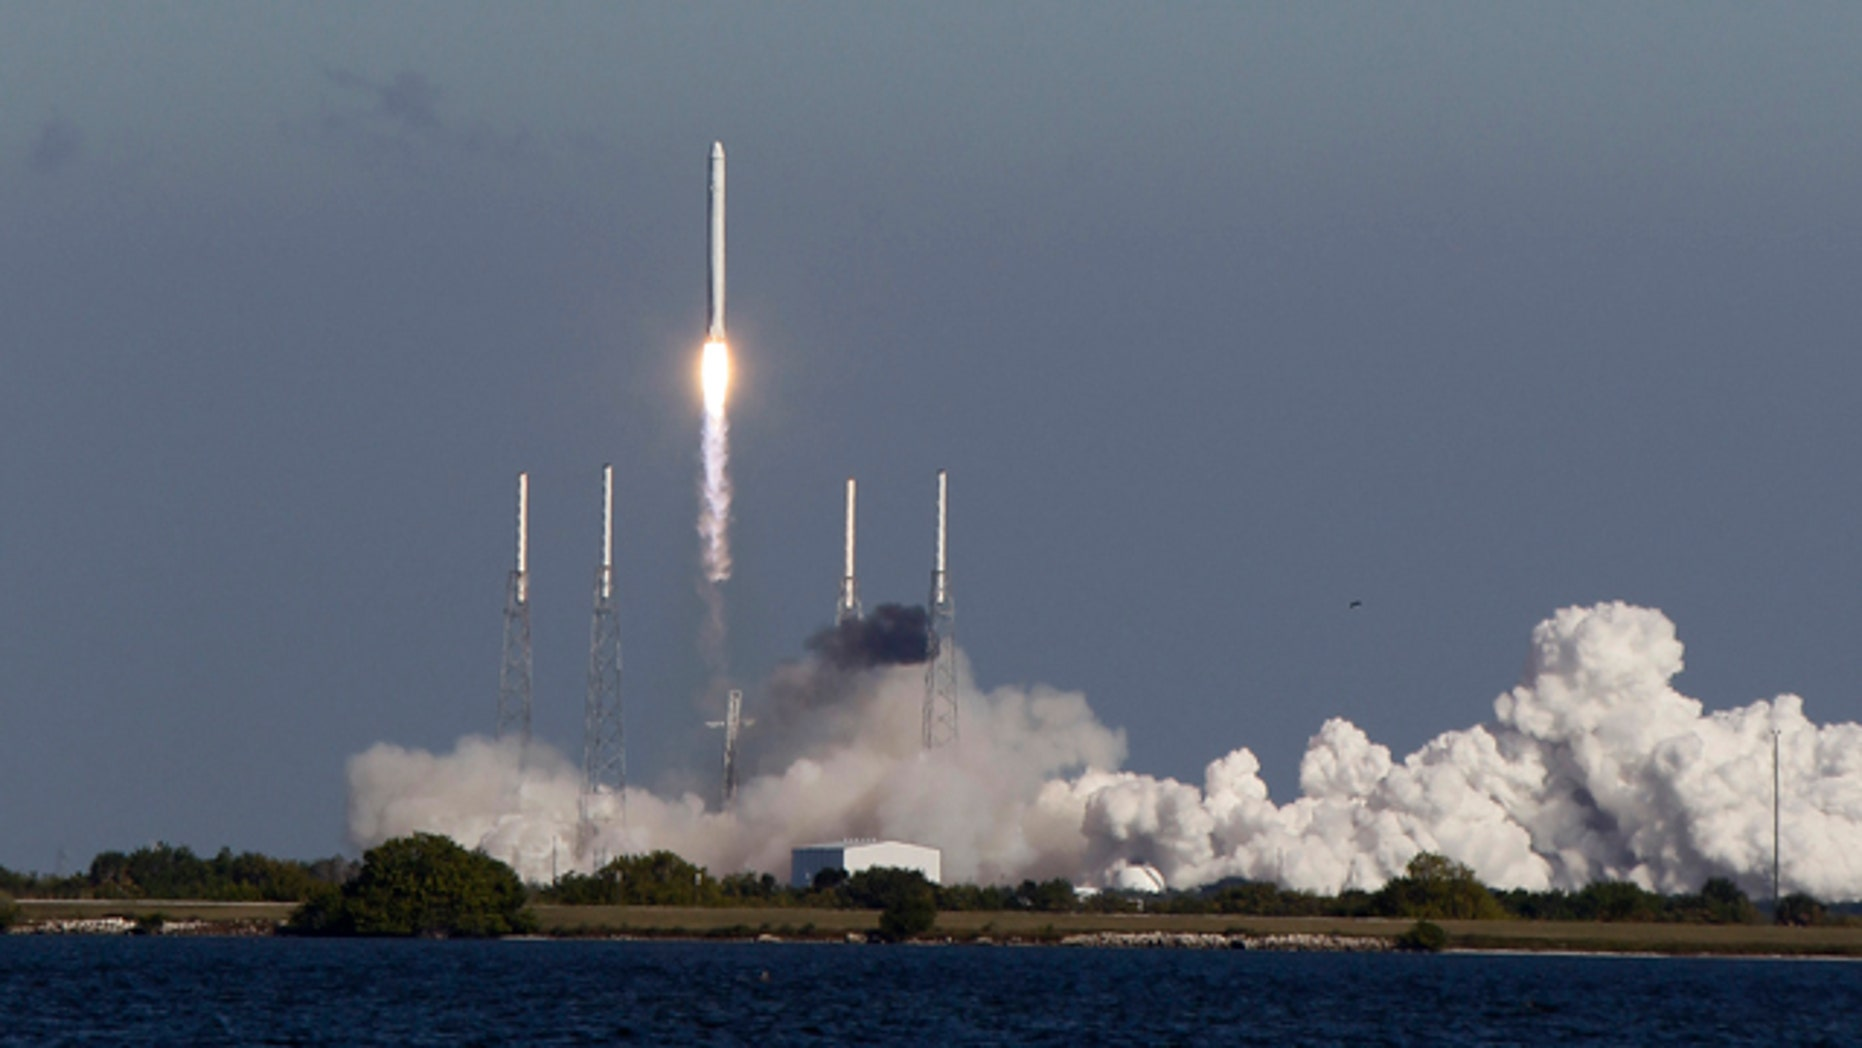 The SpaceX Falcon 9 rocket lifts off from pad 40 at the Cape Canaveral Air Force Station in Cape Canaveral, Fla., Wednesday, Dec. 8, 2010.